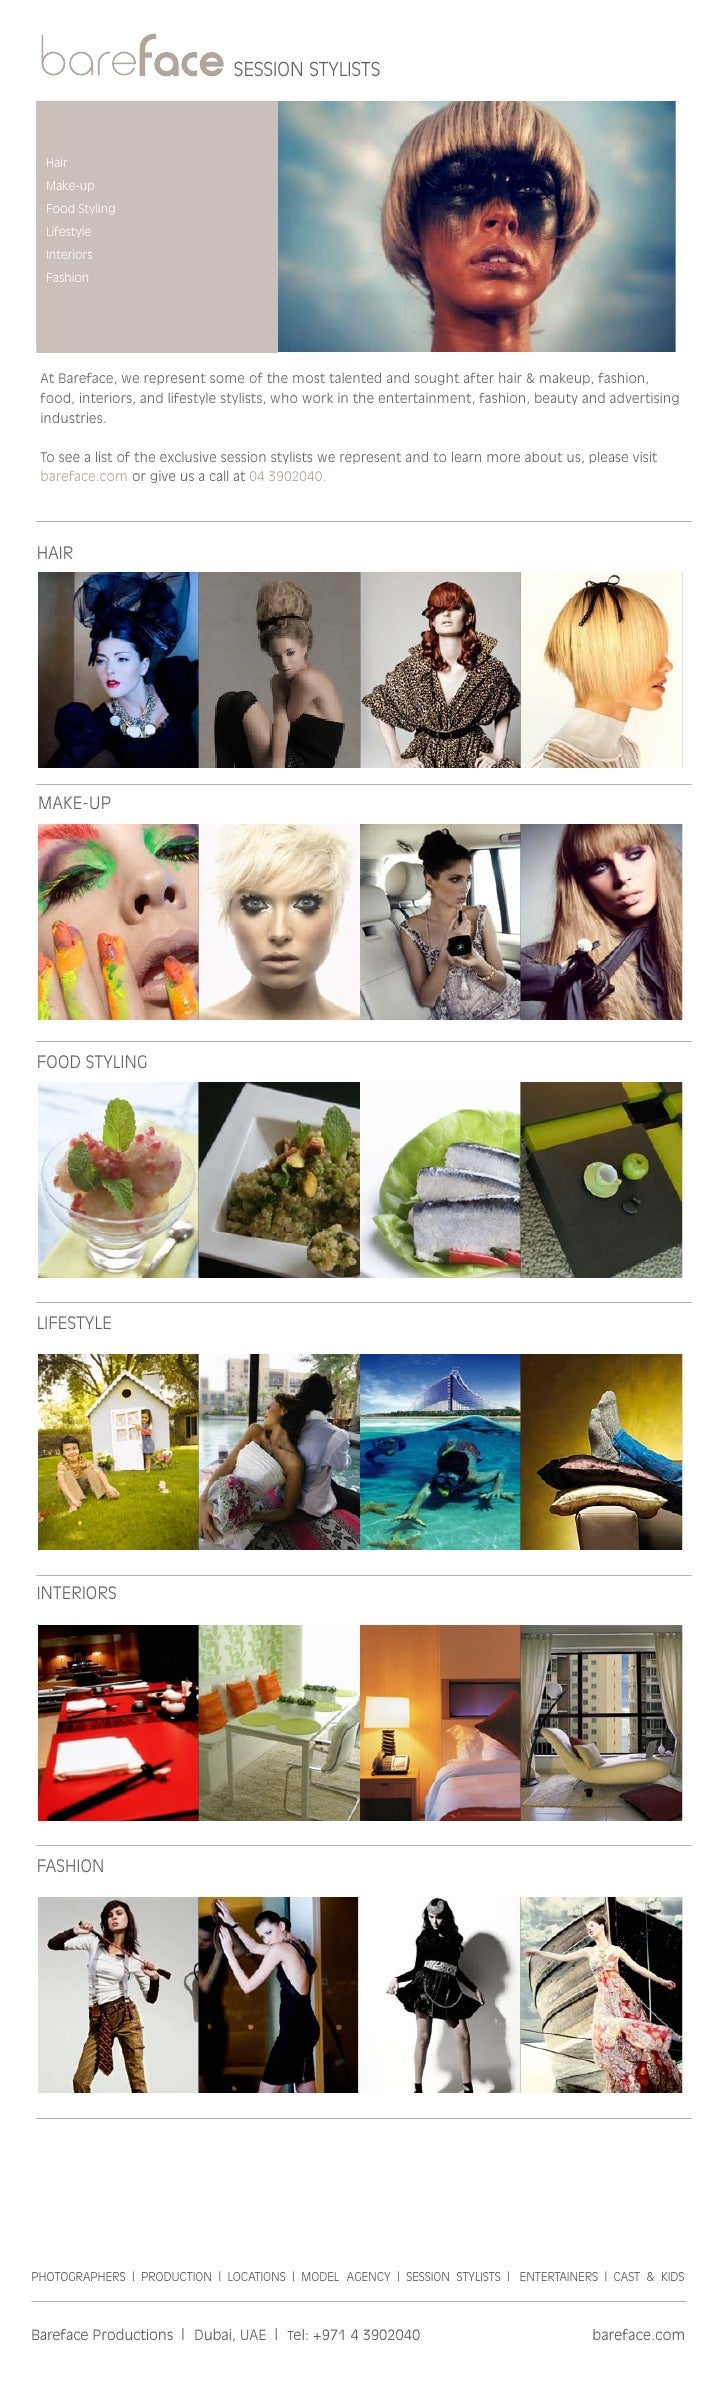 session stylists      Hair   Make-up   Food styling   lifestyle   interiors   Fashion      At Bareface, we represent some ...